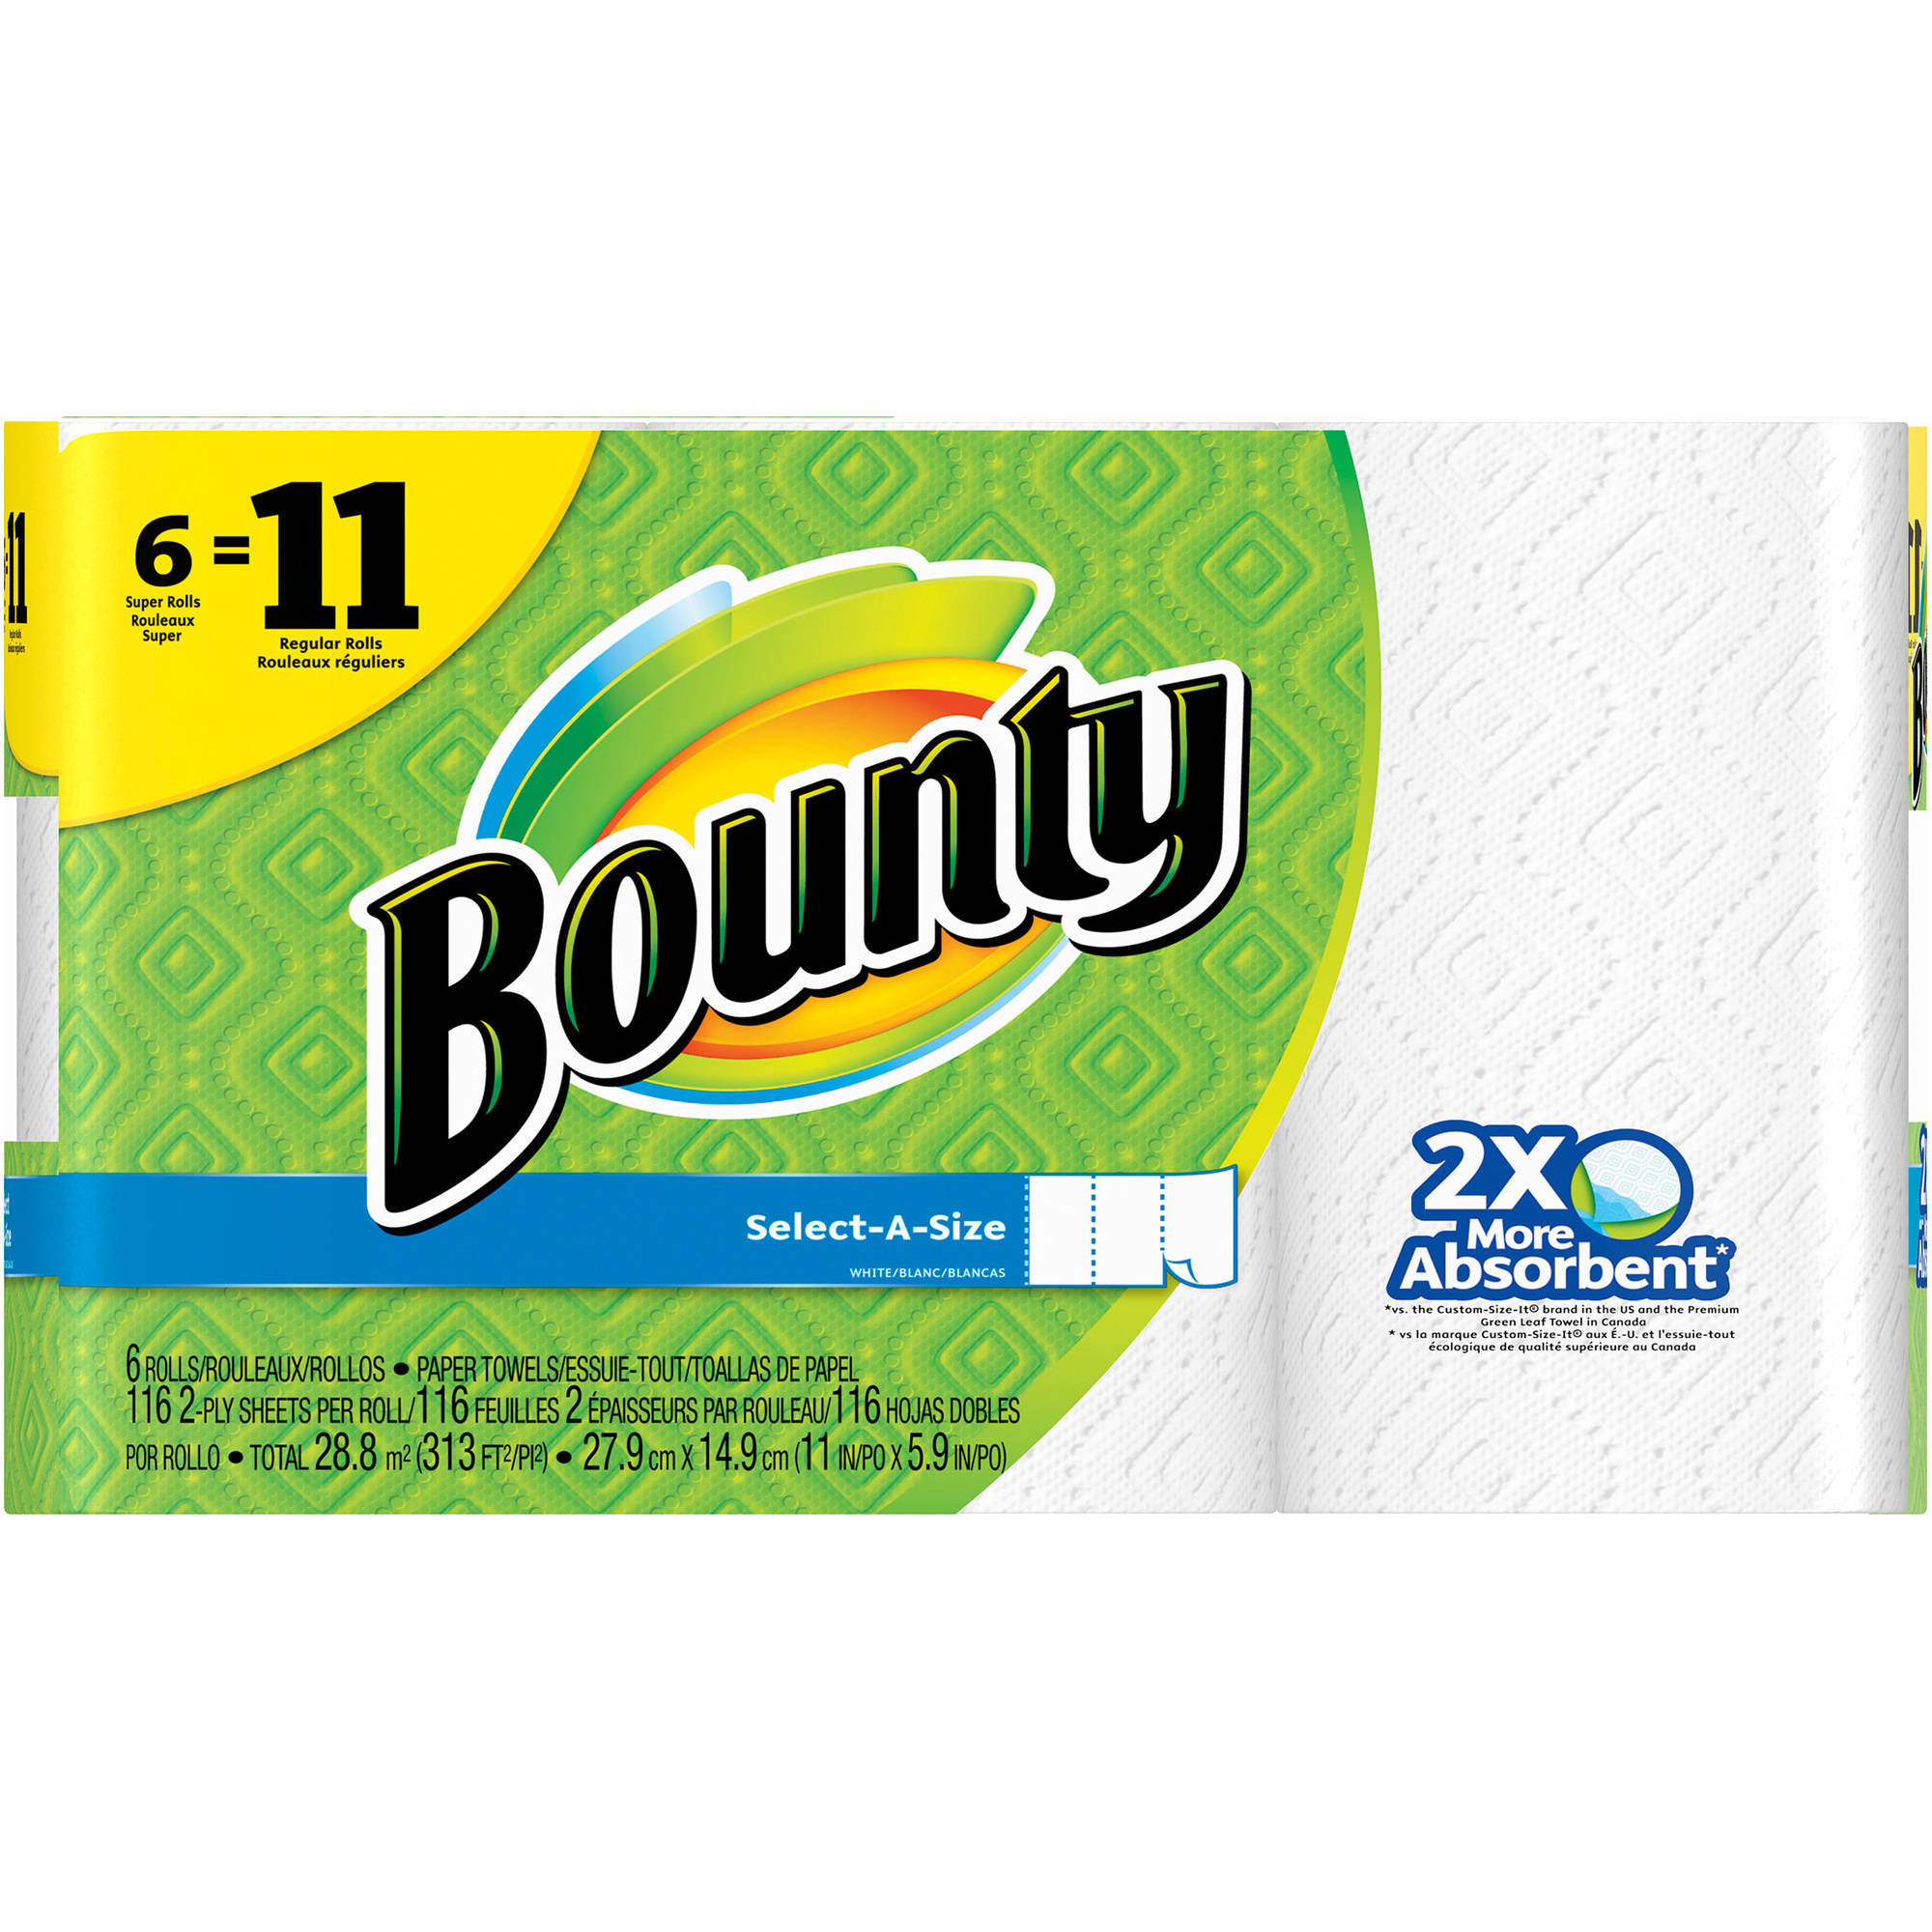 Bounty Select-a-Size Super Roll Paper Towels, 116 sheets, 6 rolls